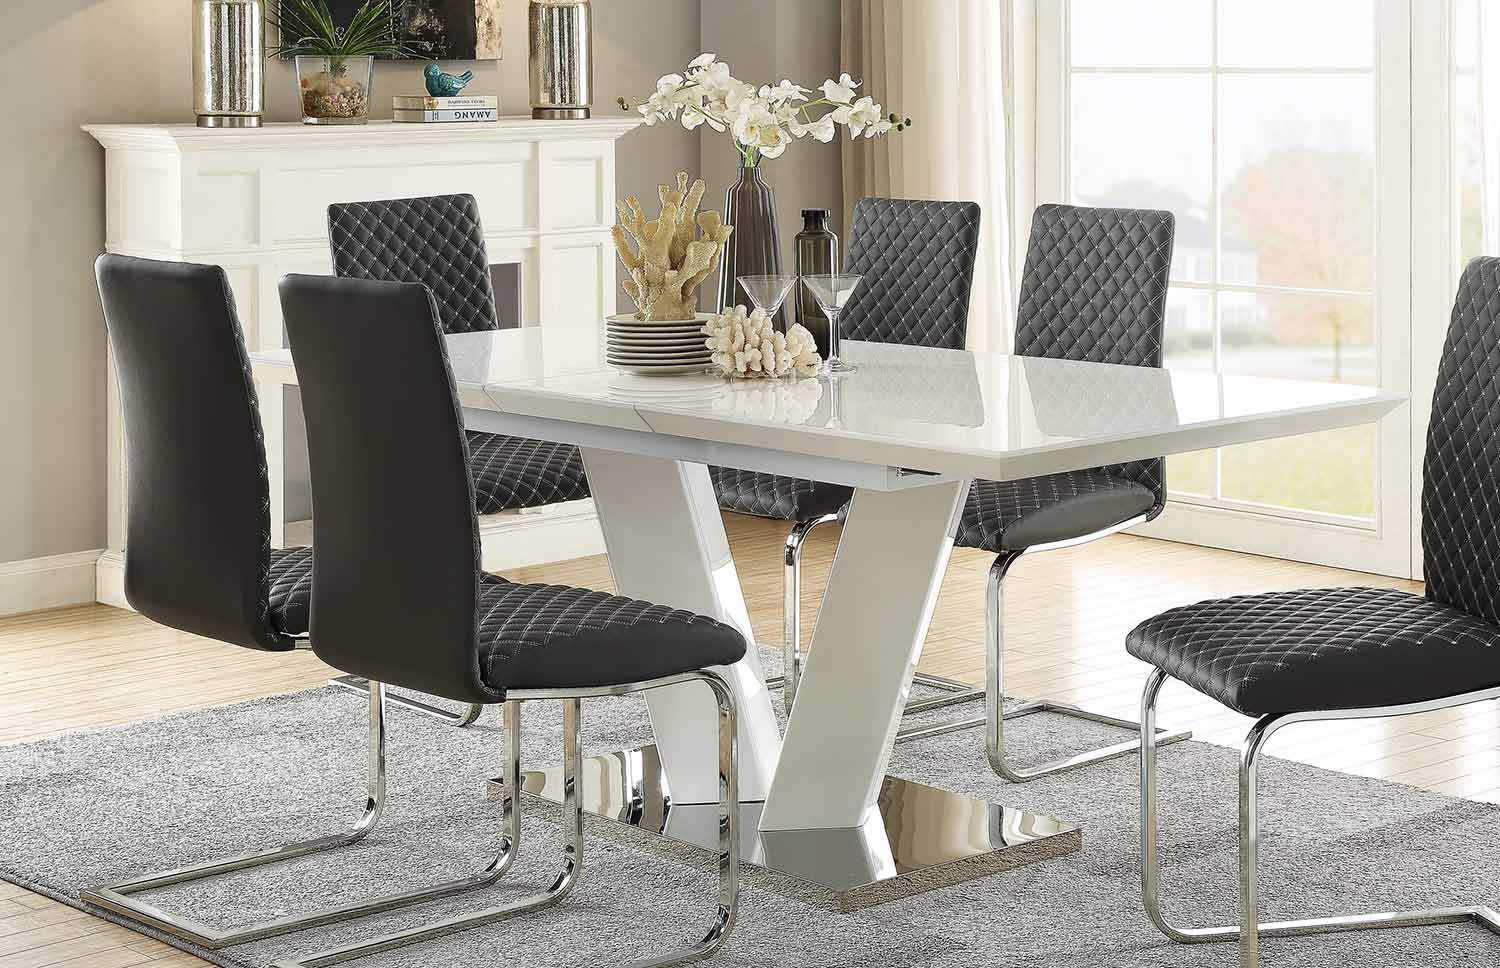 Homelegance Yannis Rectangular Dining Table with Butterfly Leaf